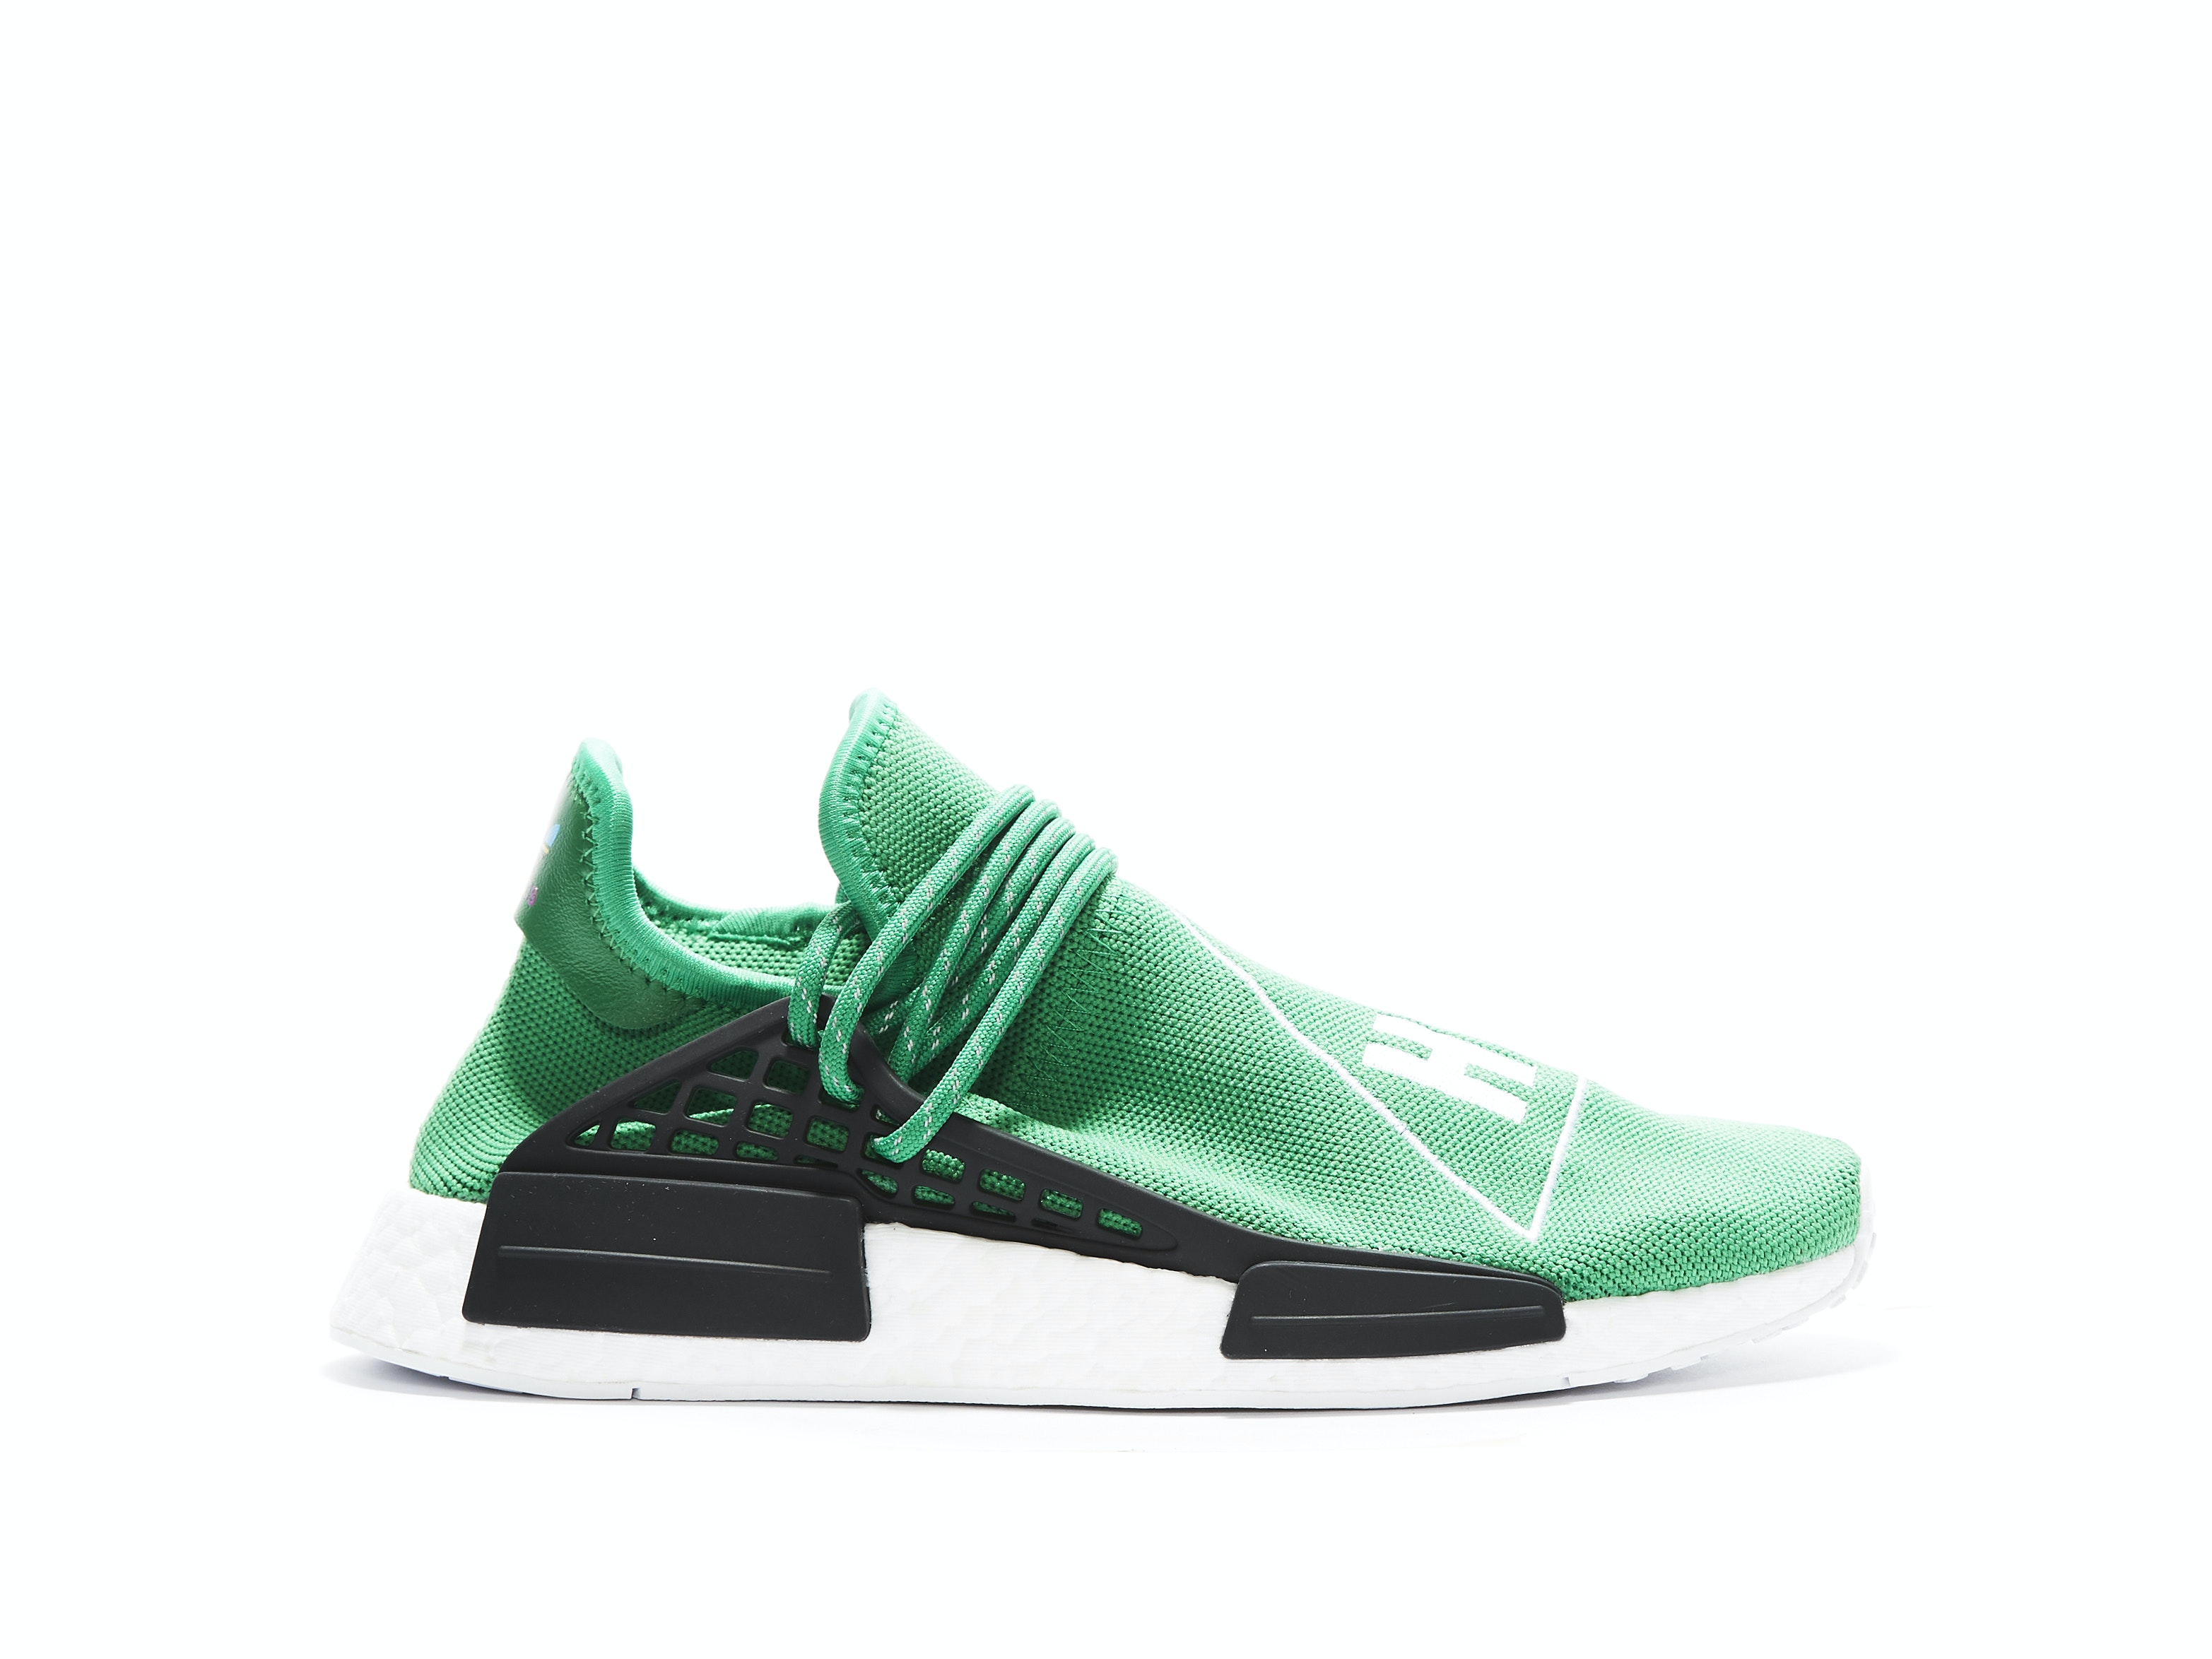 513da243fcd10 Shop NMD Human Race x Pharrell Green Online